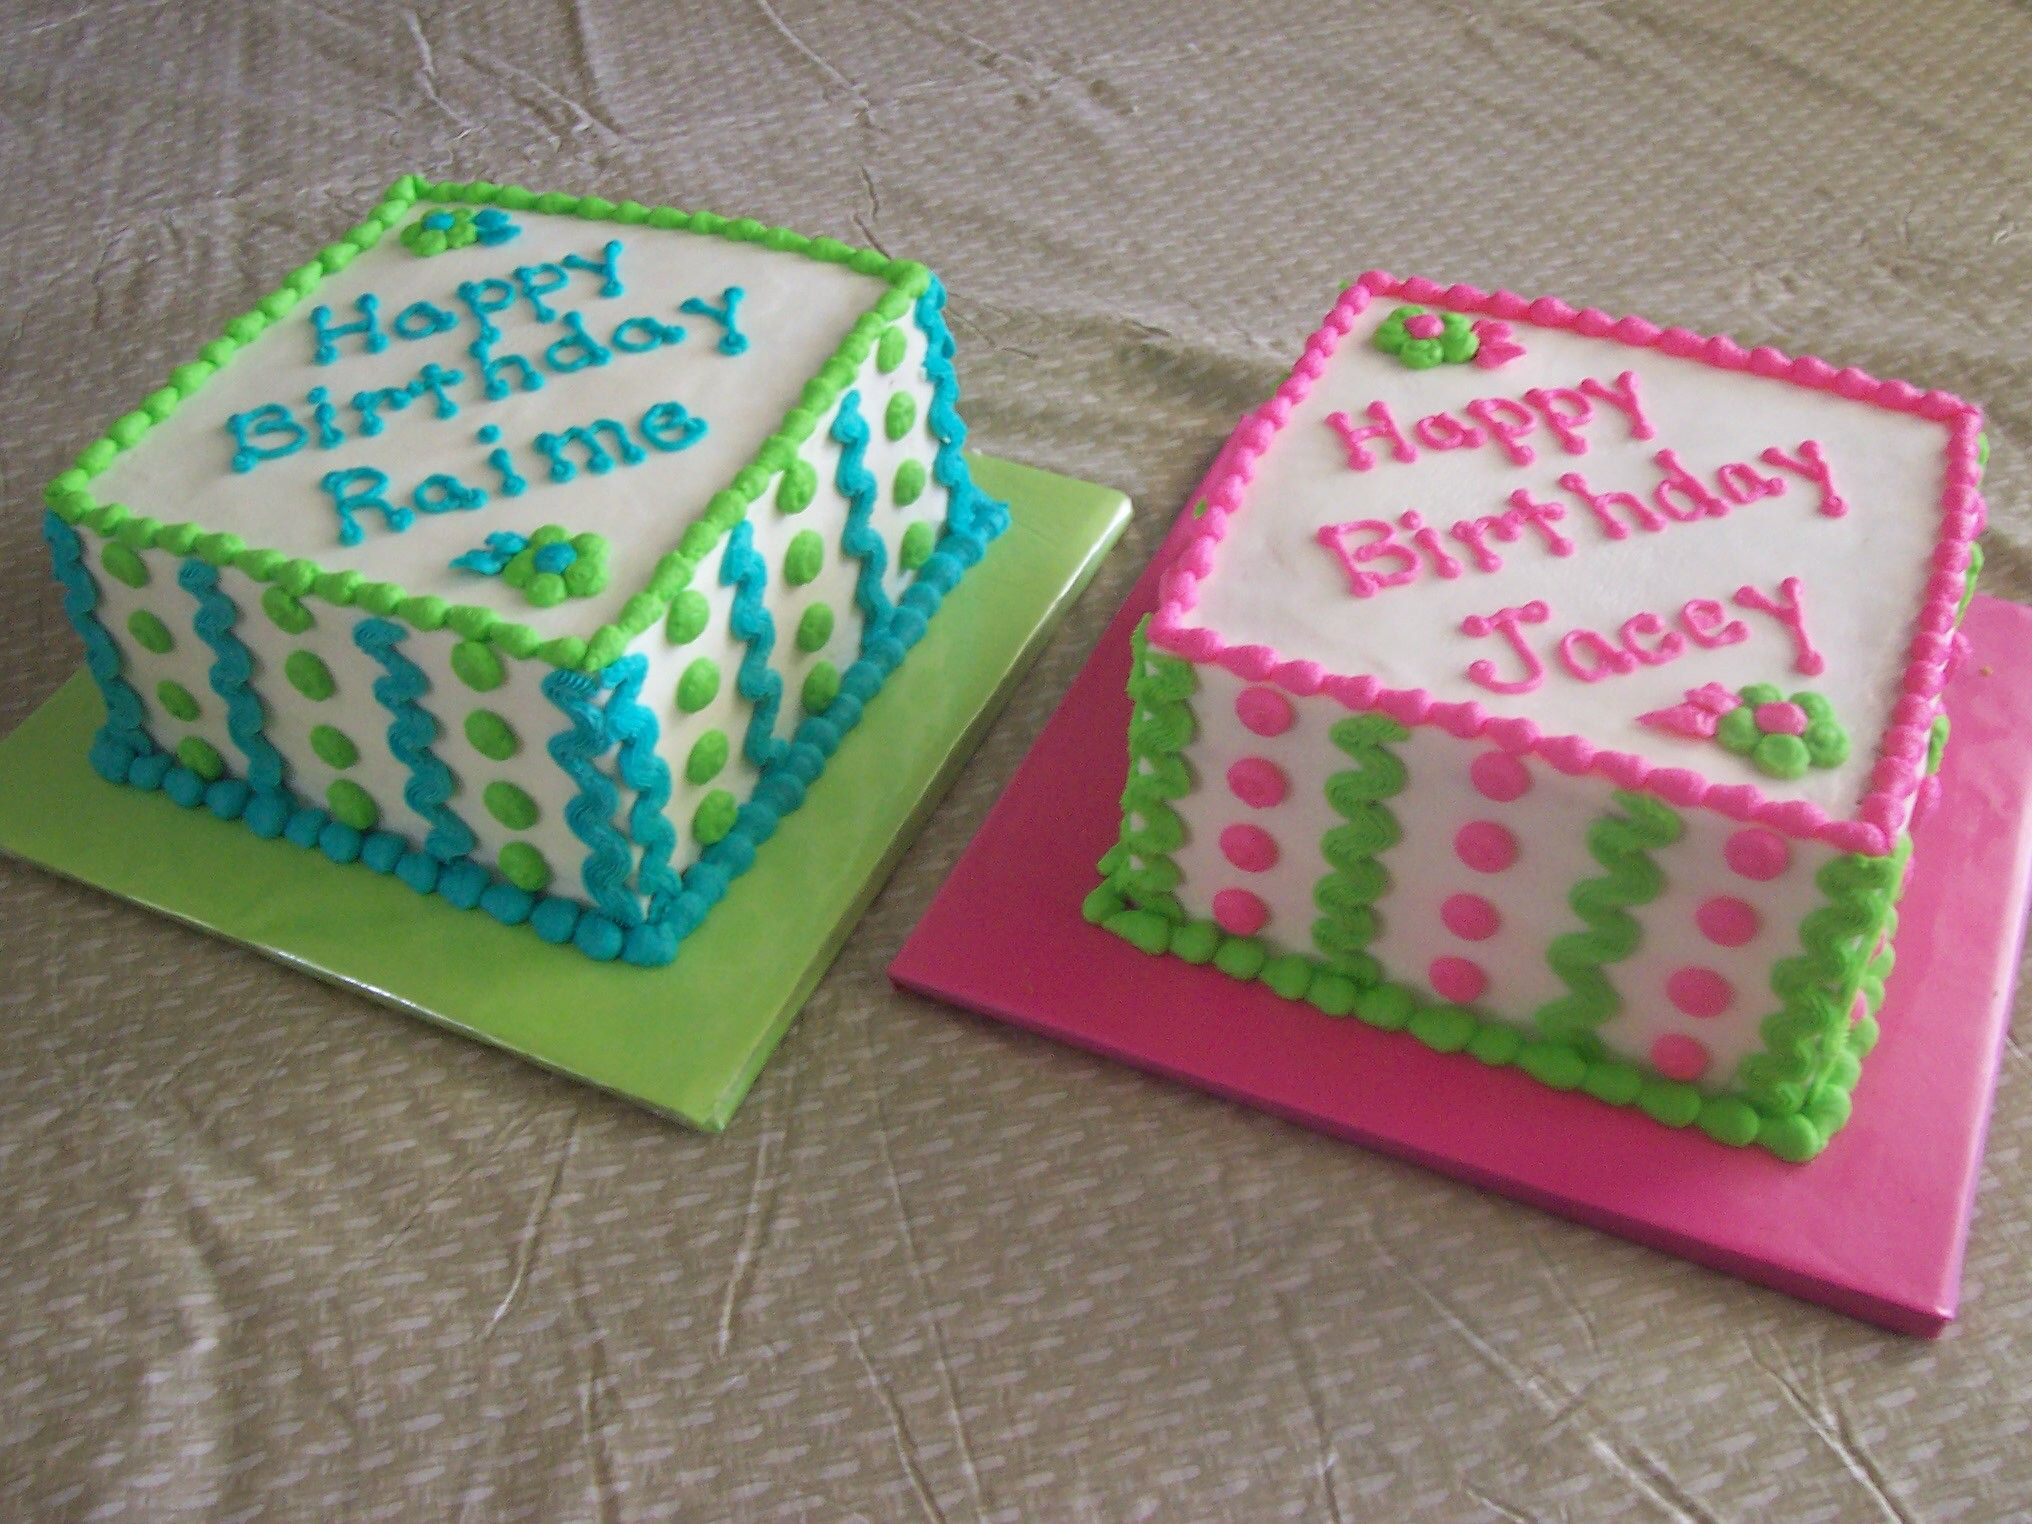 Pleasant Twins Birthday Cakes Twin Birthday Cakes Square Birthday Cake Funny Birthday Cards Online Hendilapandamsfinfo